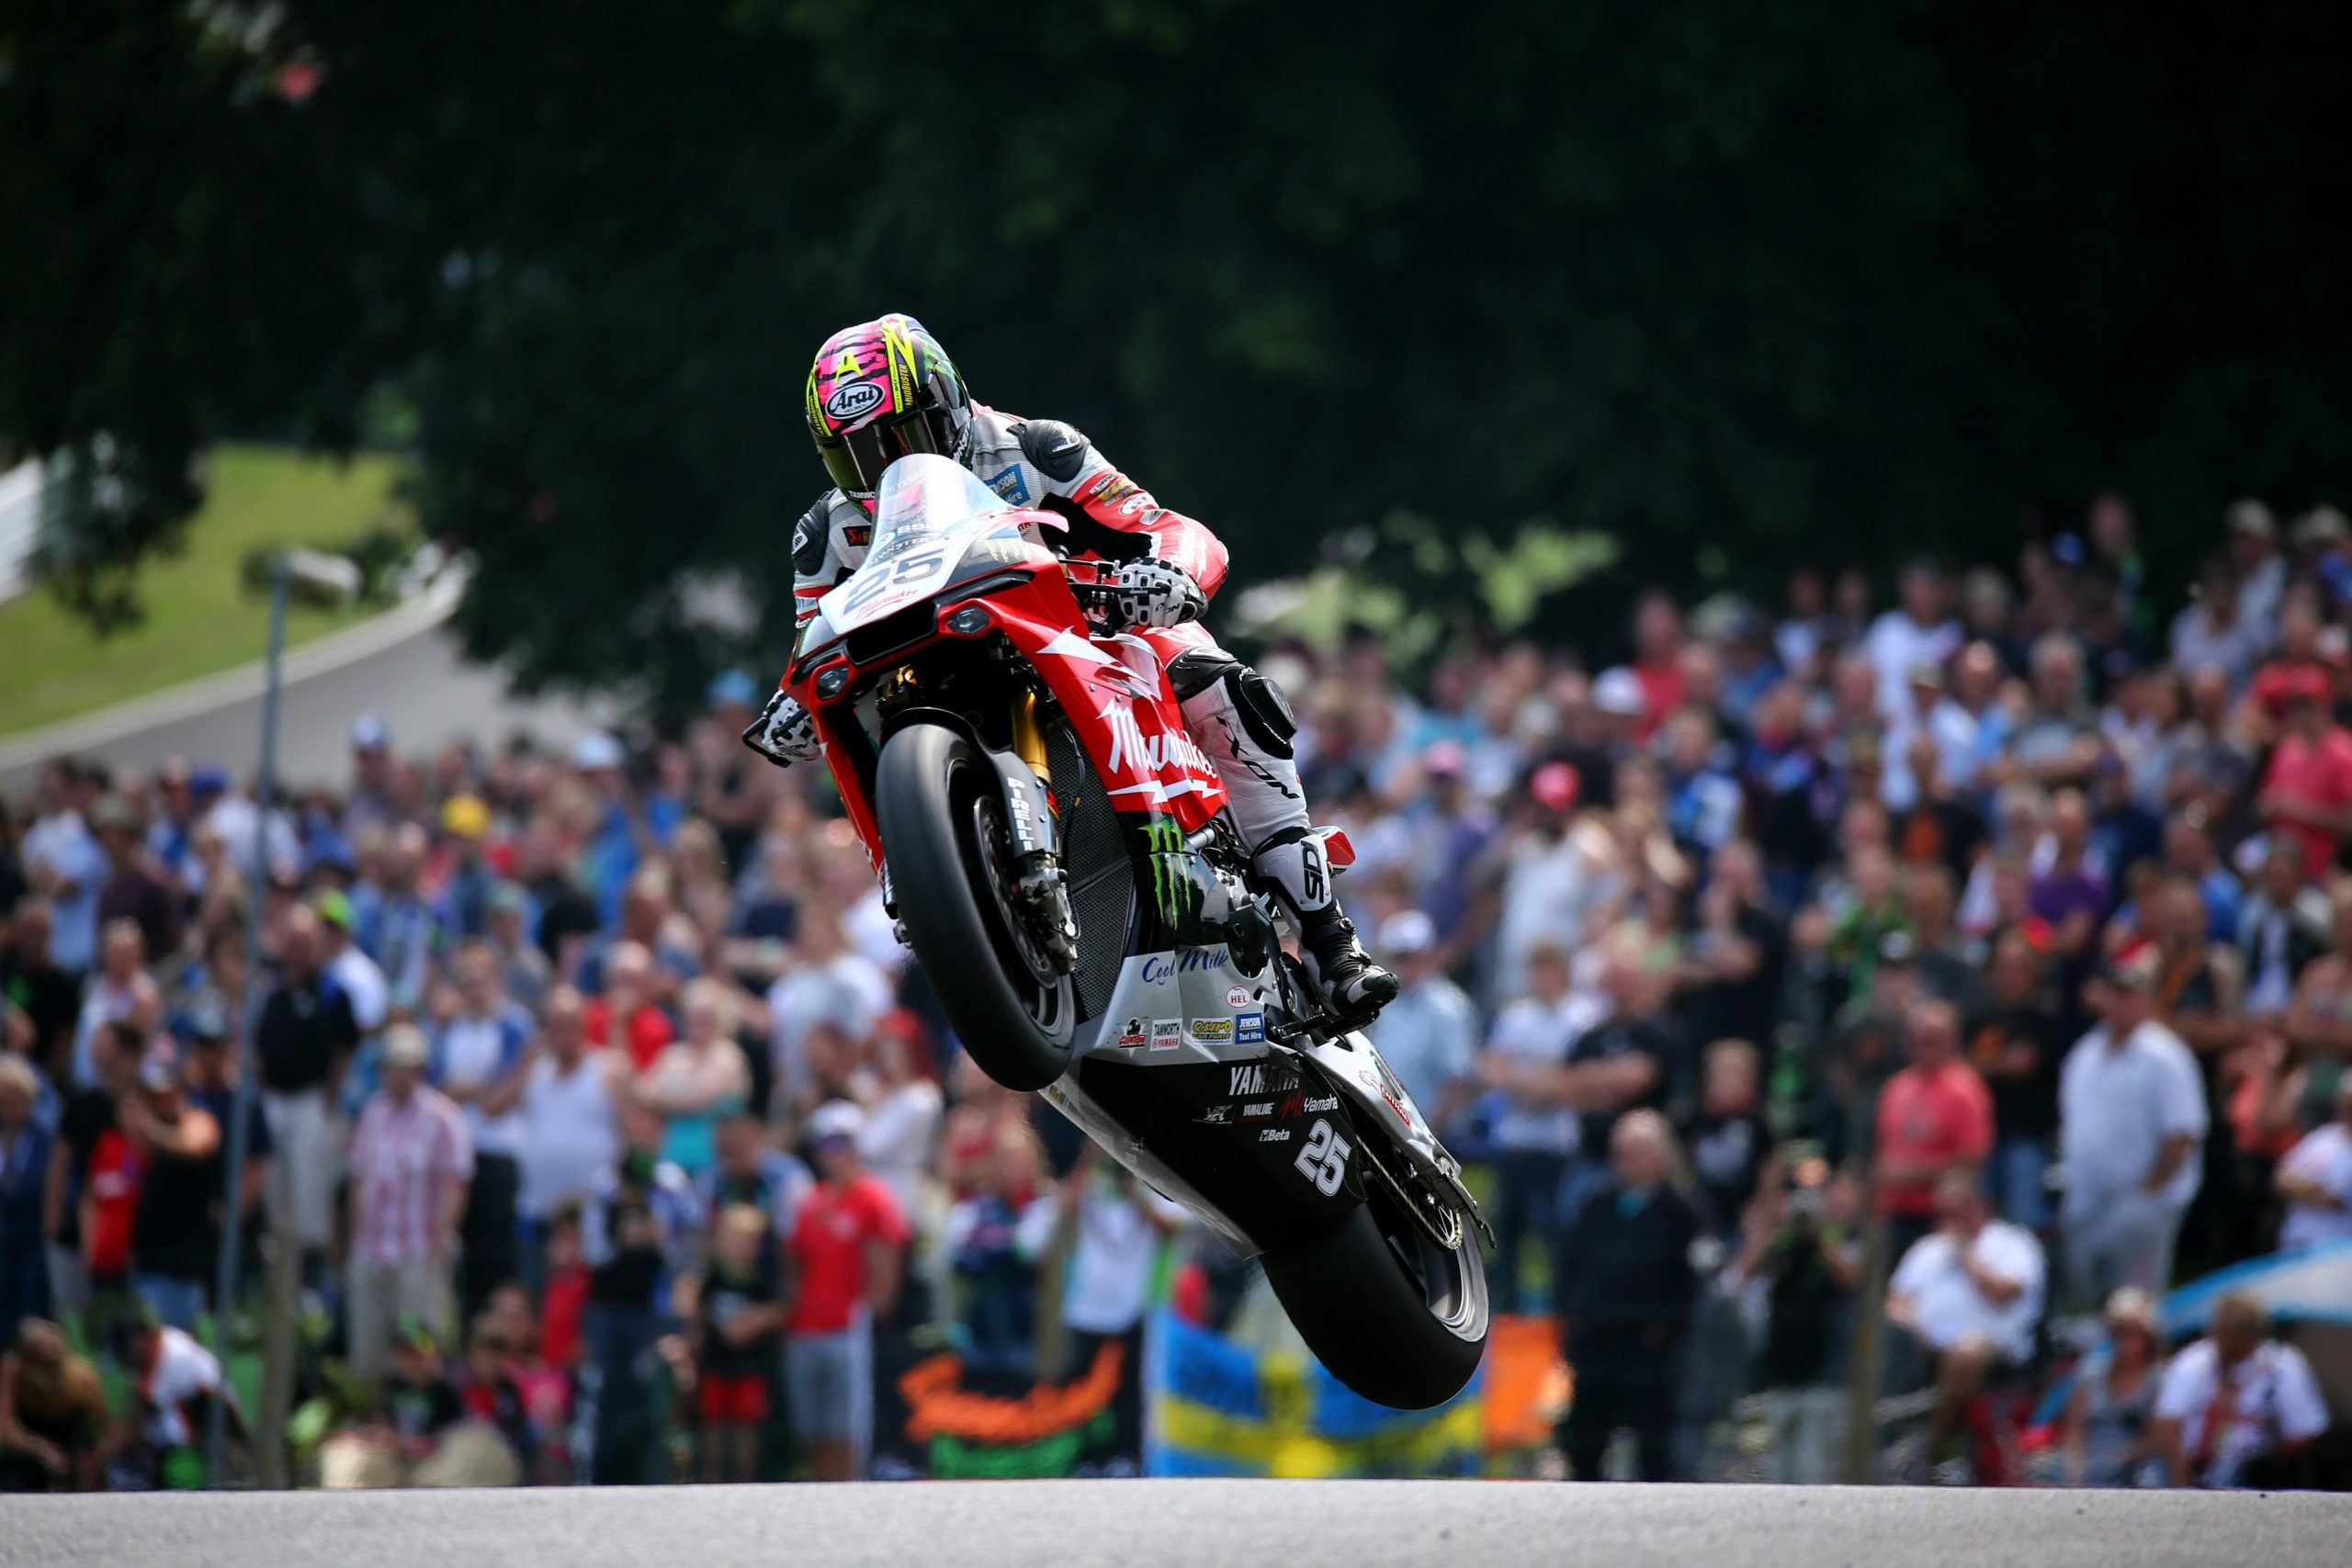 Josh Brookes in spectacular action over the Mountain at Cadwell park image by Impact Images